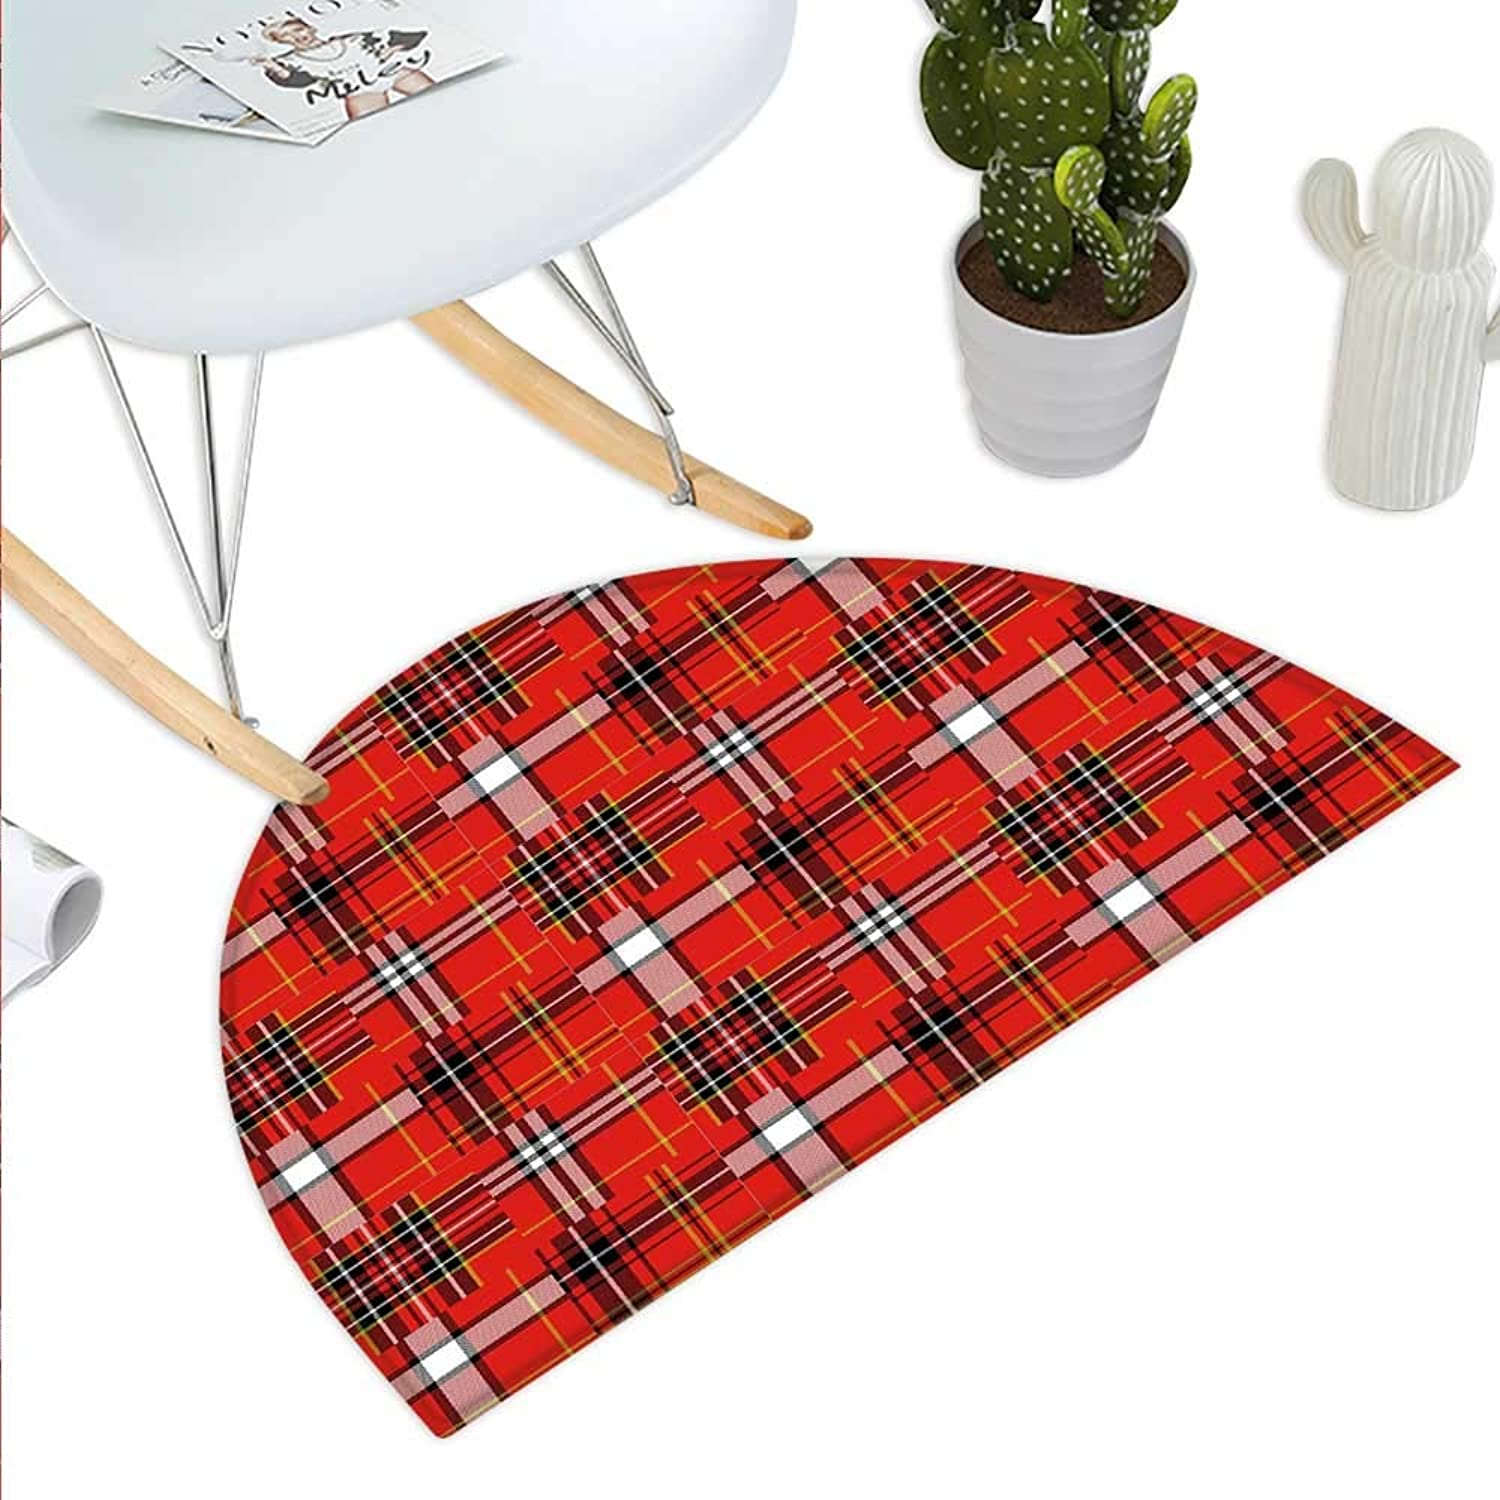 Plaid Semicircle Doormat Traditional Tartan Pattern European Culture Inspiration Abstract Geometric Motifs Halfmoon doormats H 43.3  xD 64.9  Multicolor